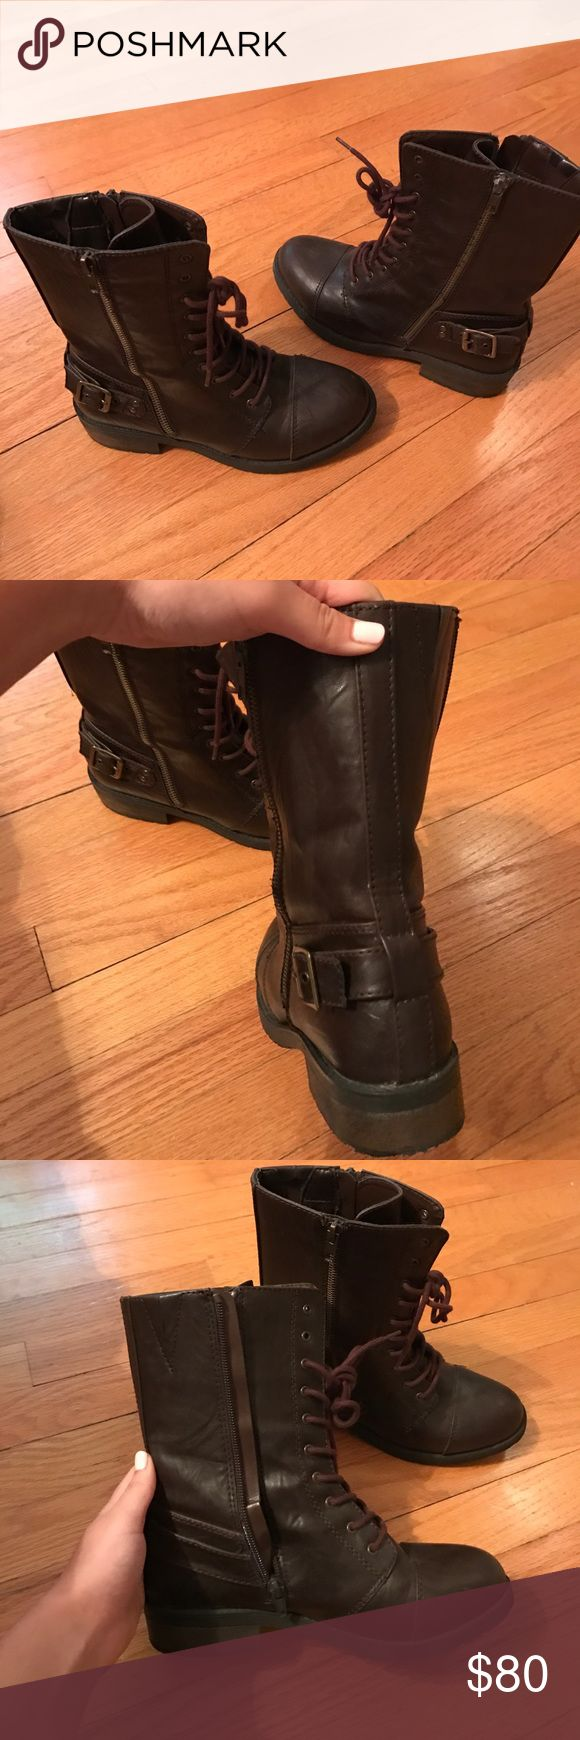 White mountain brown combat boots LIKE BRAND NEW brown zip up combat boots, only worn twice, perfect condition, no signs of wear or flaws White Mountain Shoes Combat & Moto Boots